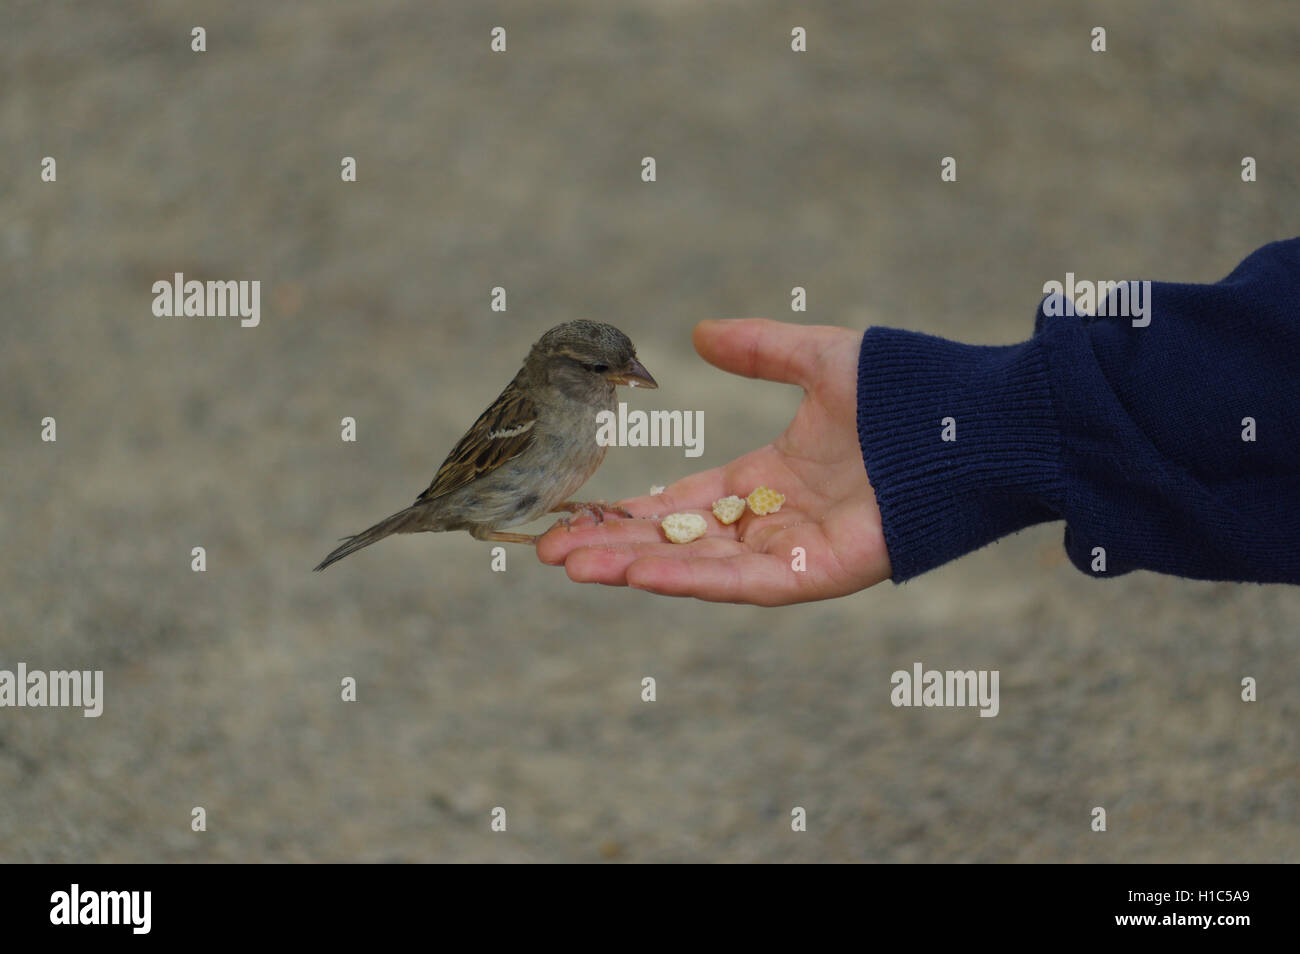 sparrow bird eating bread from outstretched hand Stock Photo